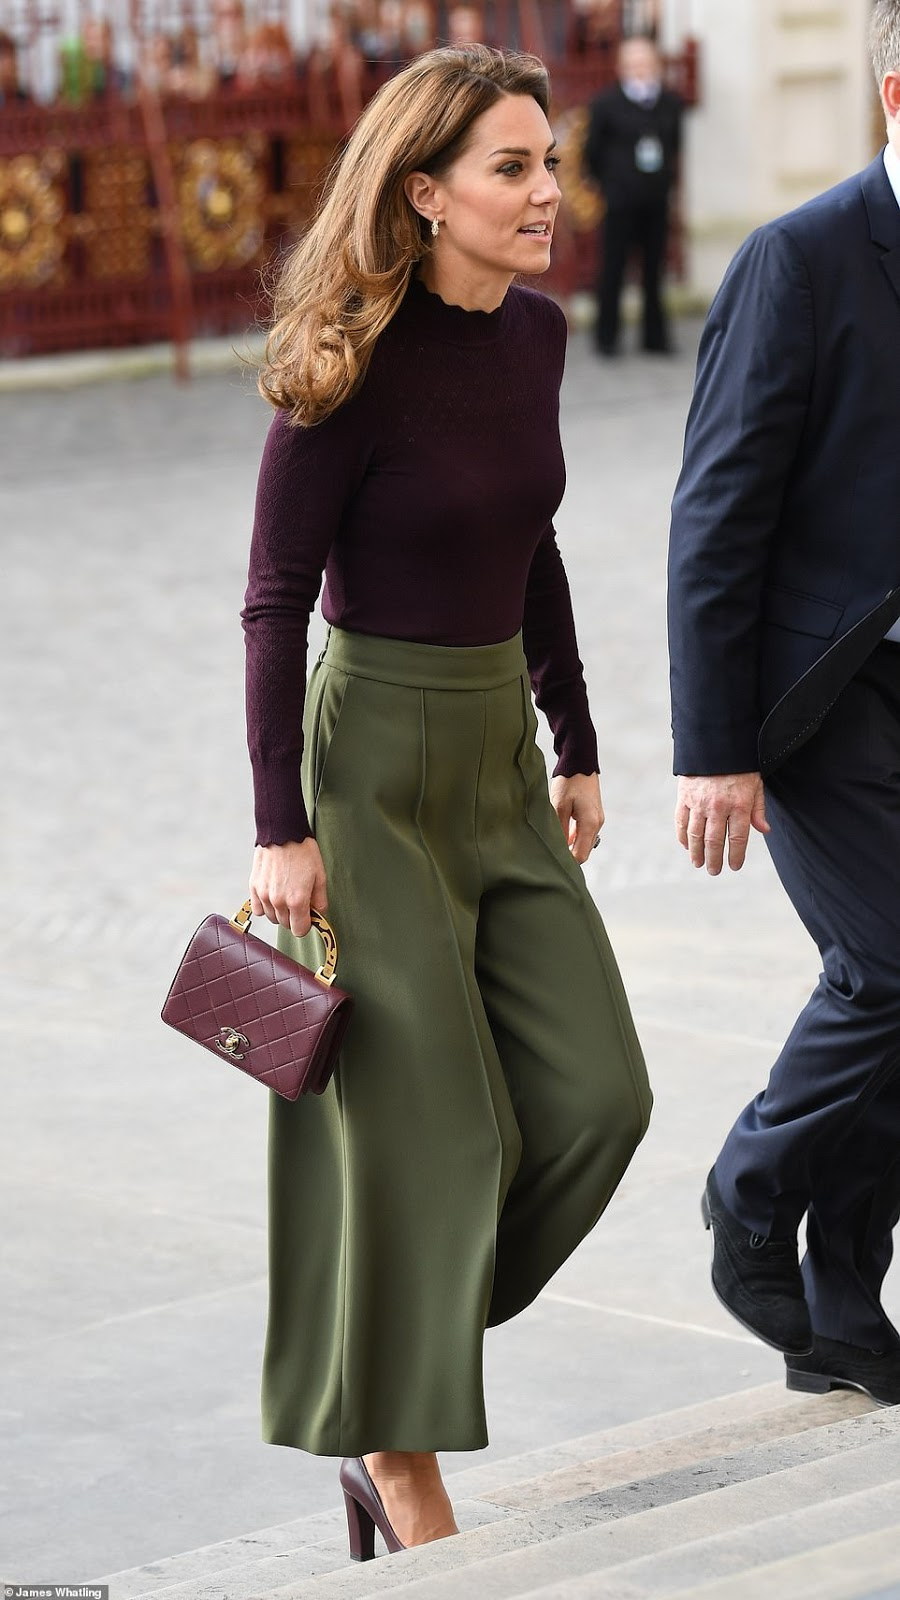 Kate Middleton steps out in Jigsaw culottes and a Warehouse jumper